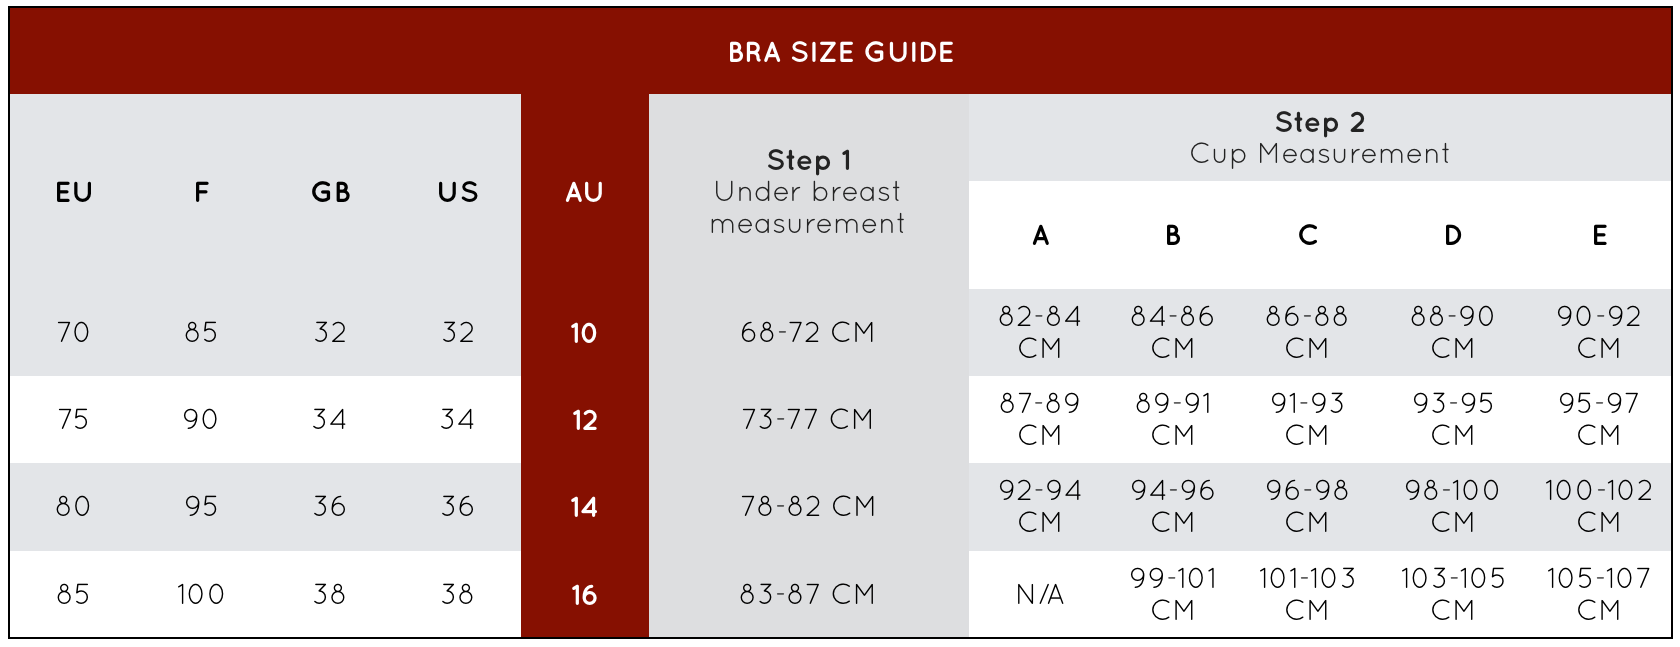 Lingerie care bras luxury lingerie more for breast cancer bra fit nvjuhfo Choice Image